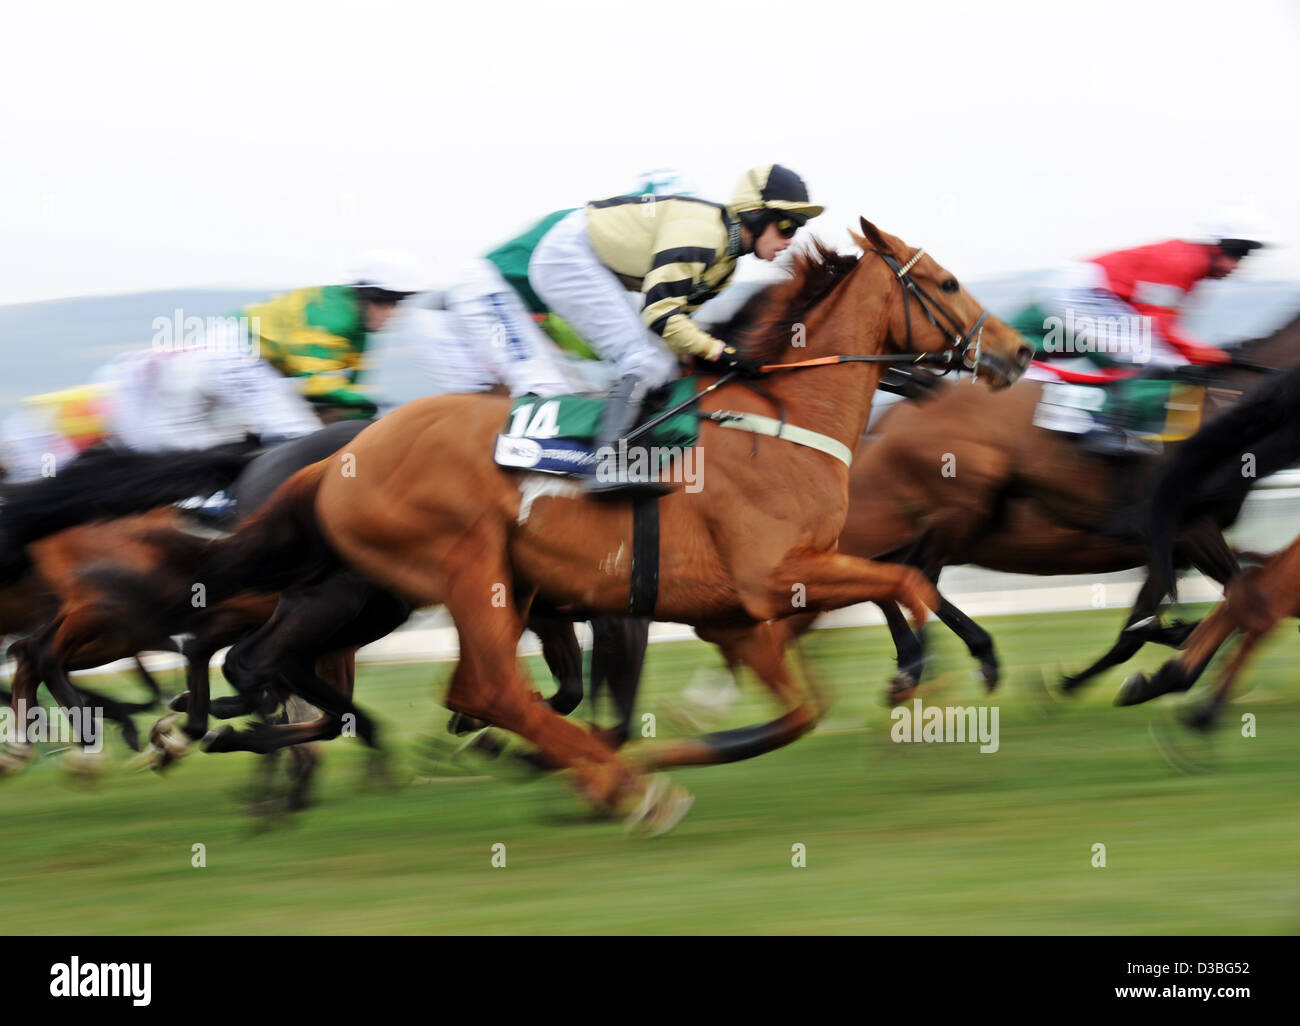 Jockeys ride their horses in front of the Grandstand during The Cheltenham Festival an annual horse racing event Stock Photo